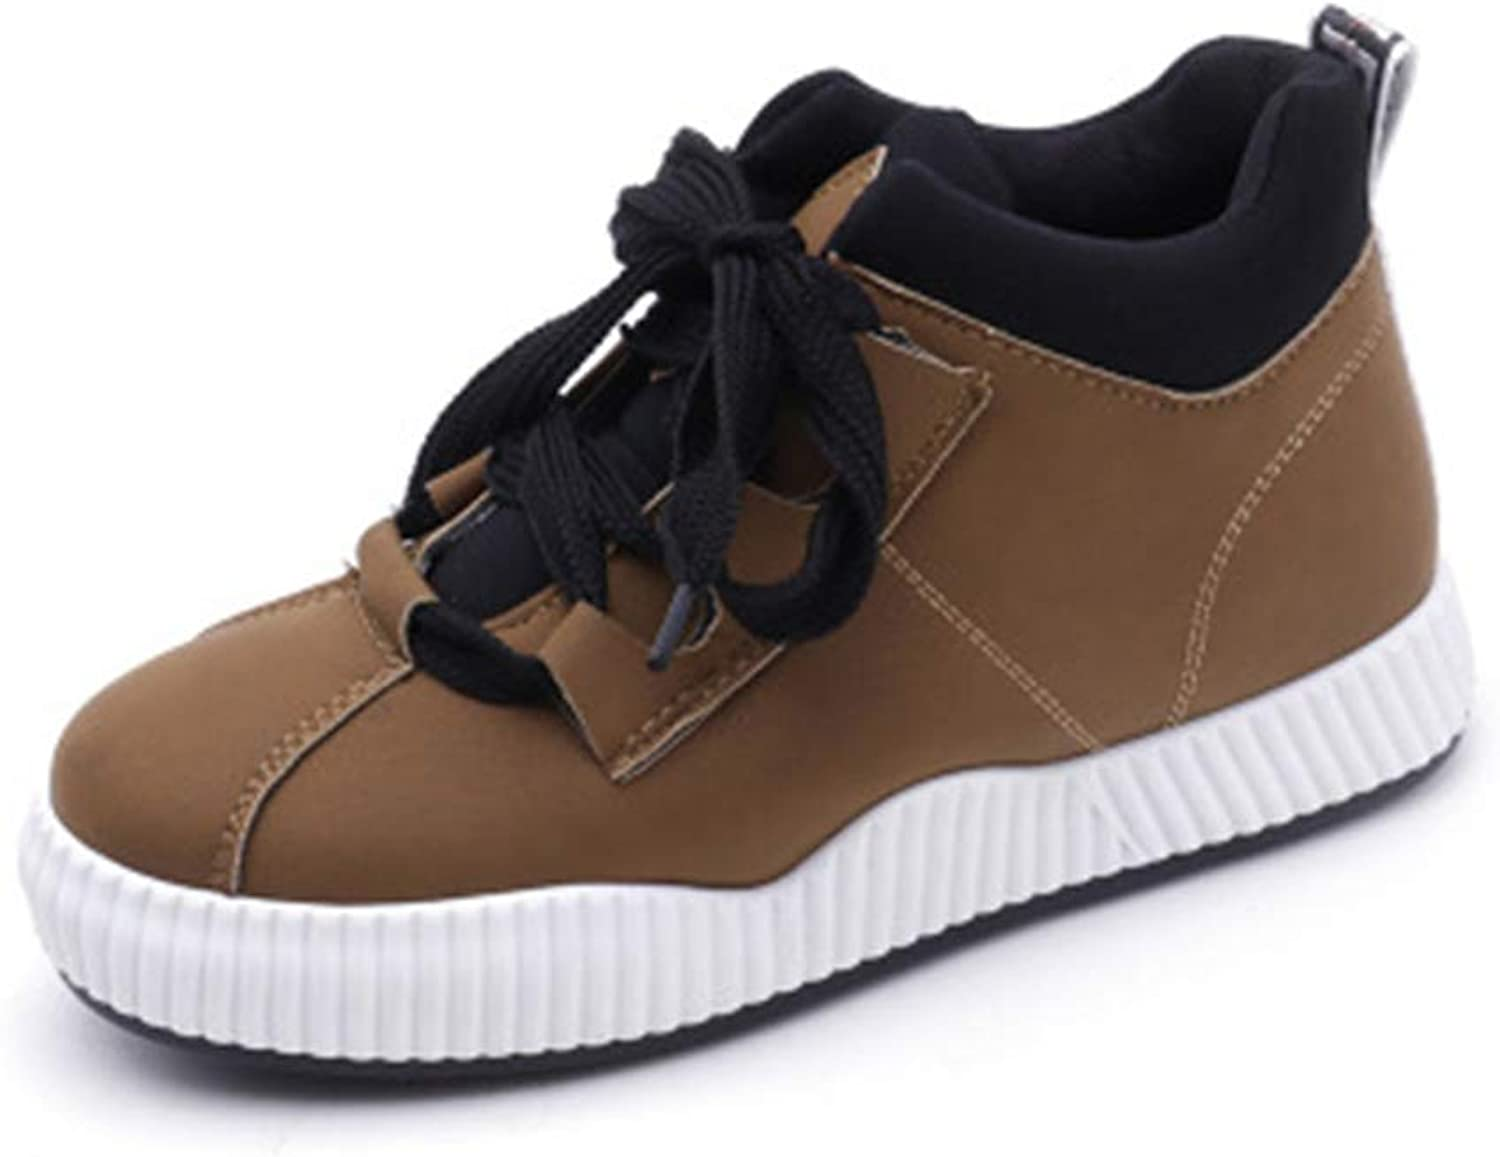 Women's Thick-Soled Platform shoes High-top Sneakers Casual shoes